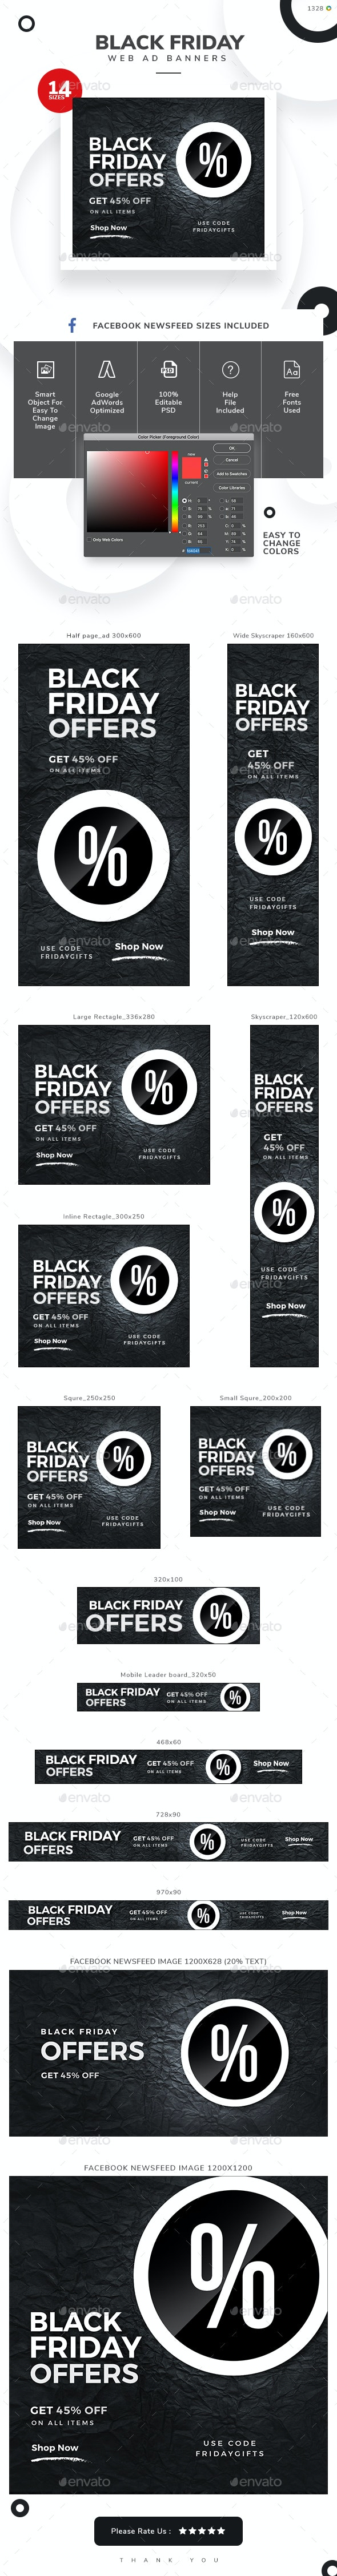 Black Friday Web Banner Set - Banners & Ads Web Elements